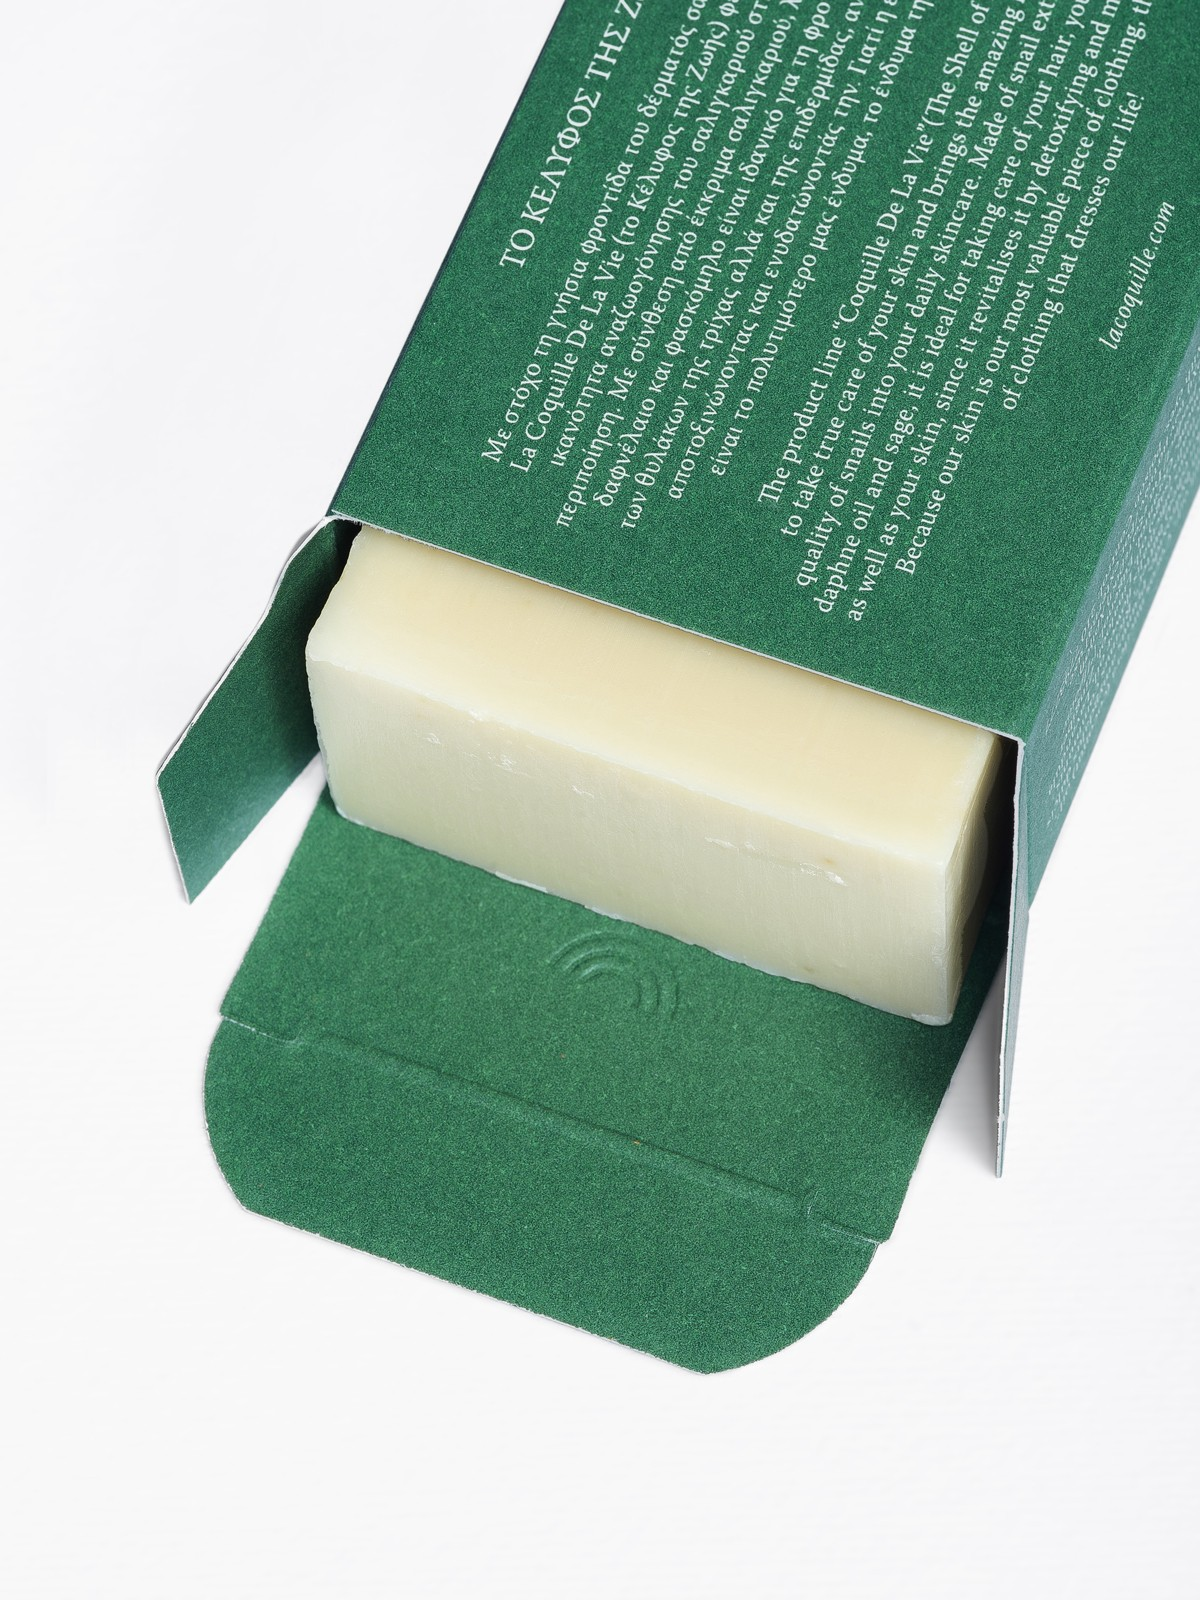 Snail secretion, Daphne oil & Sage Soap bar